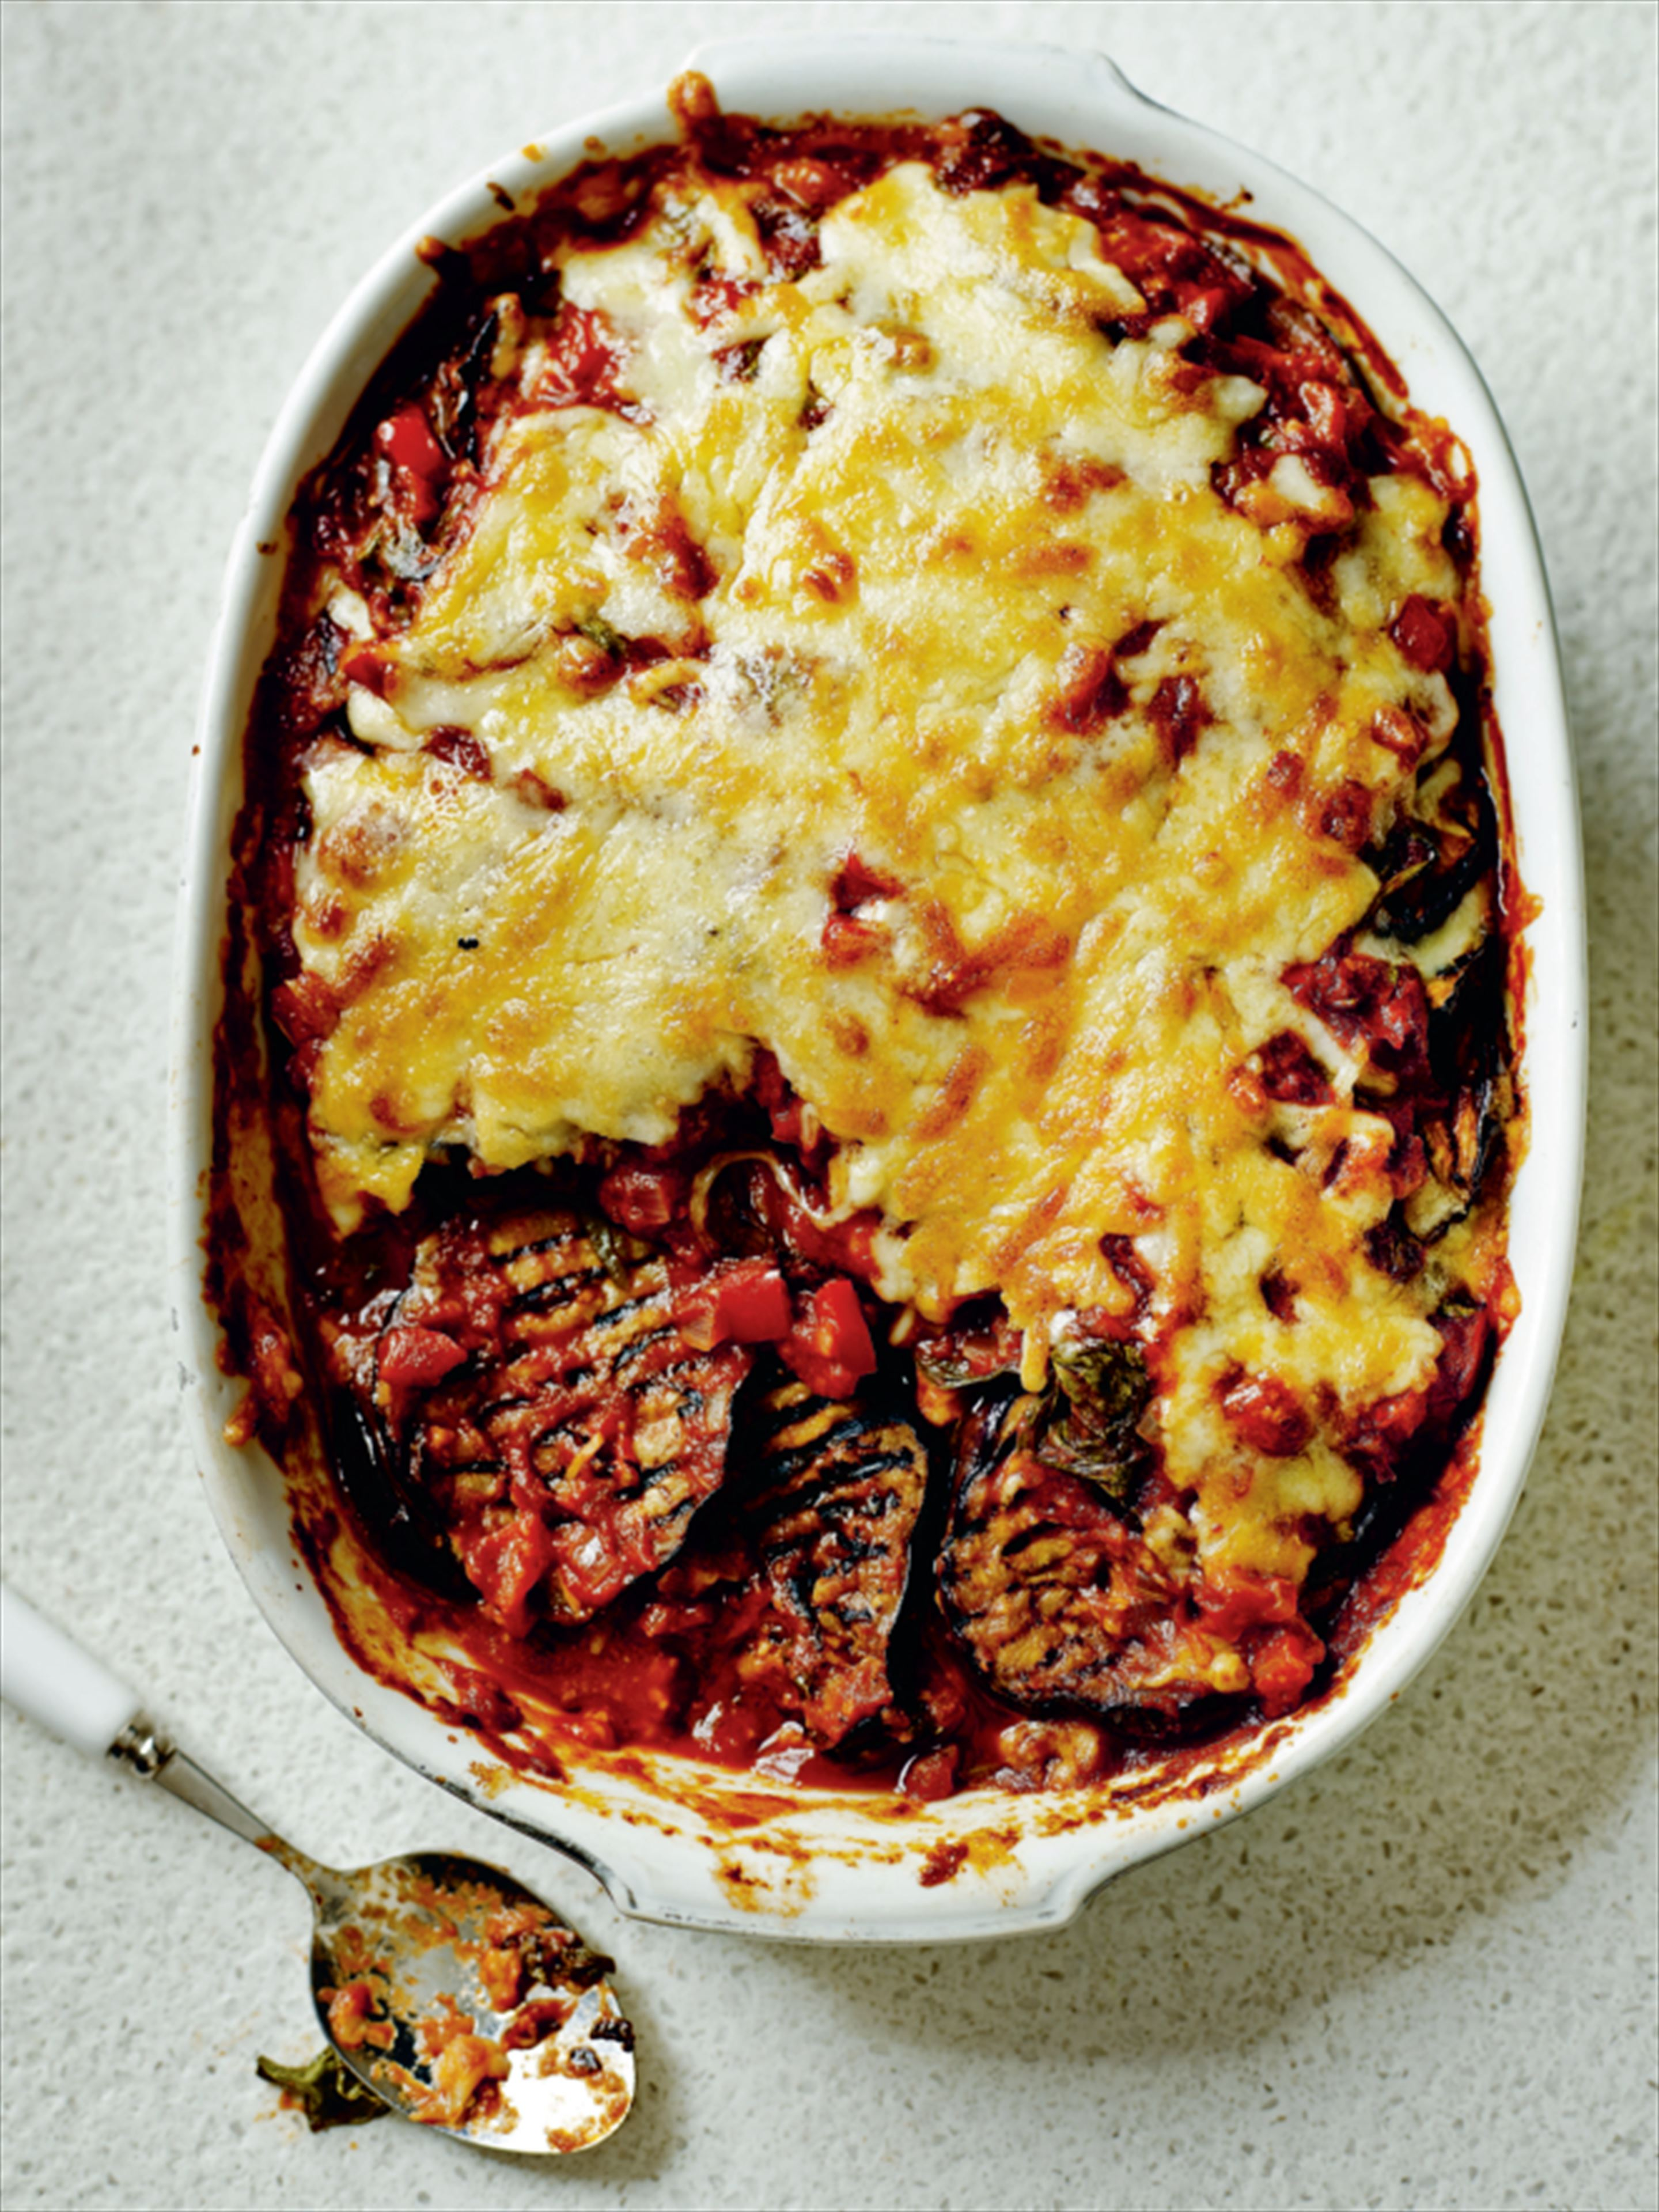 Aubergine layer bake